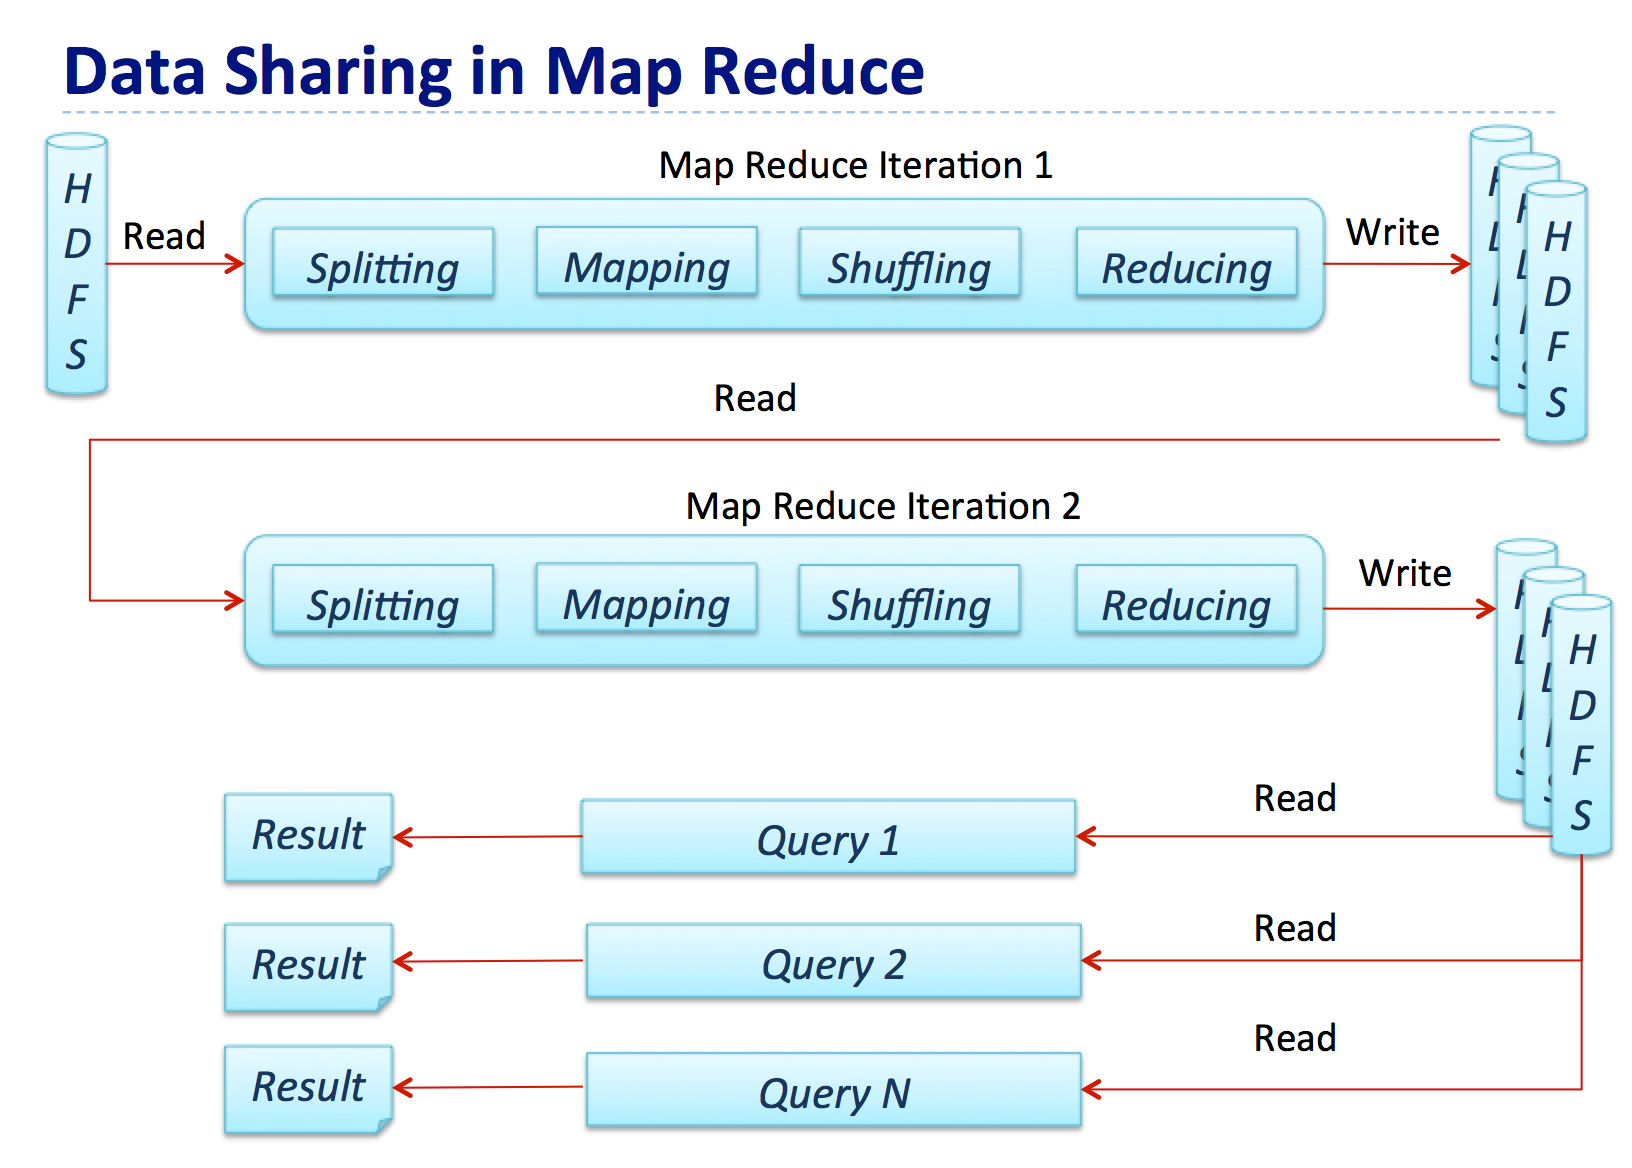 Data Sharing in Map Reduce